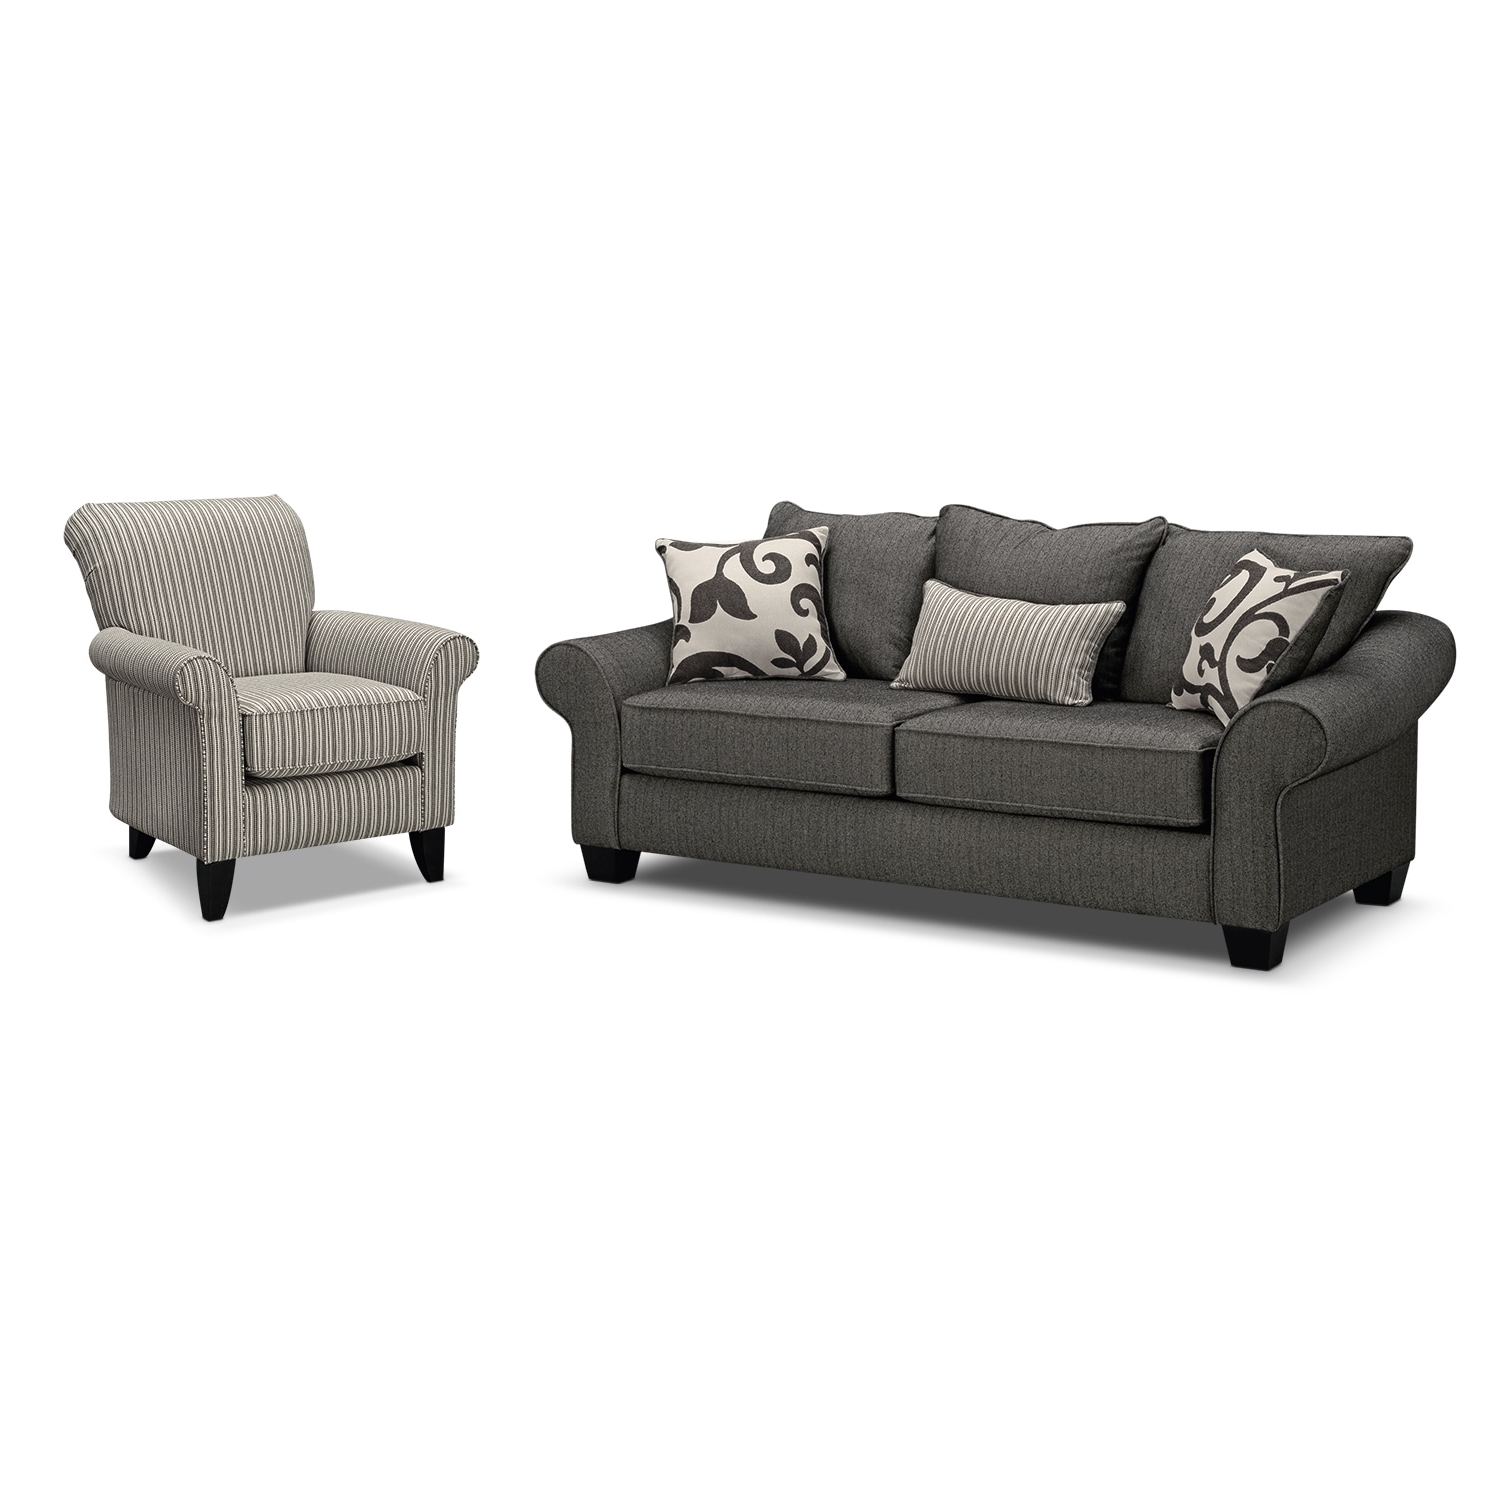 Value City Furniture Intended For Sofa And Accent Chair Sets (View 20 of 20)